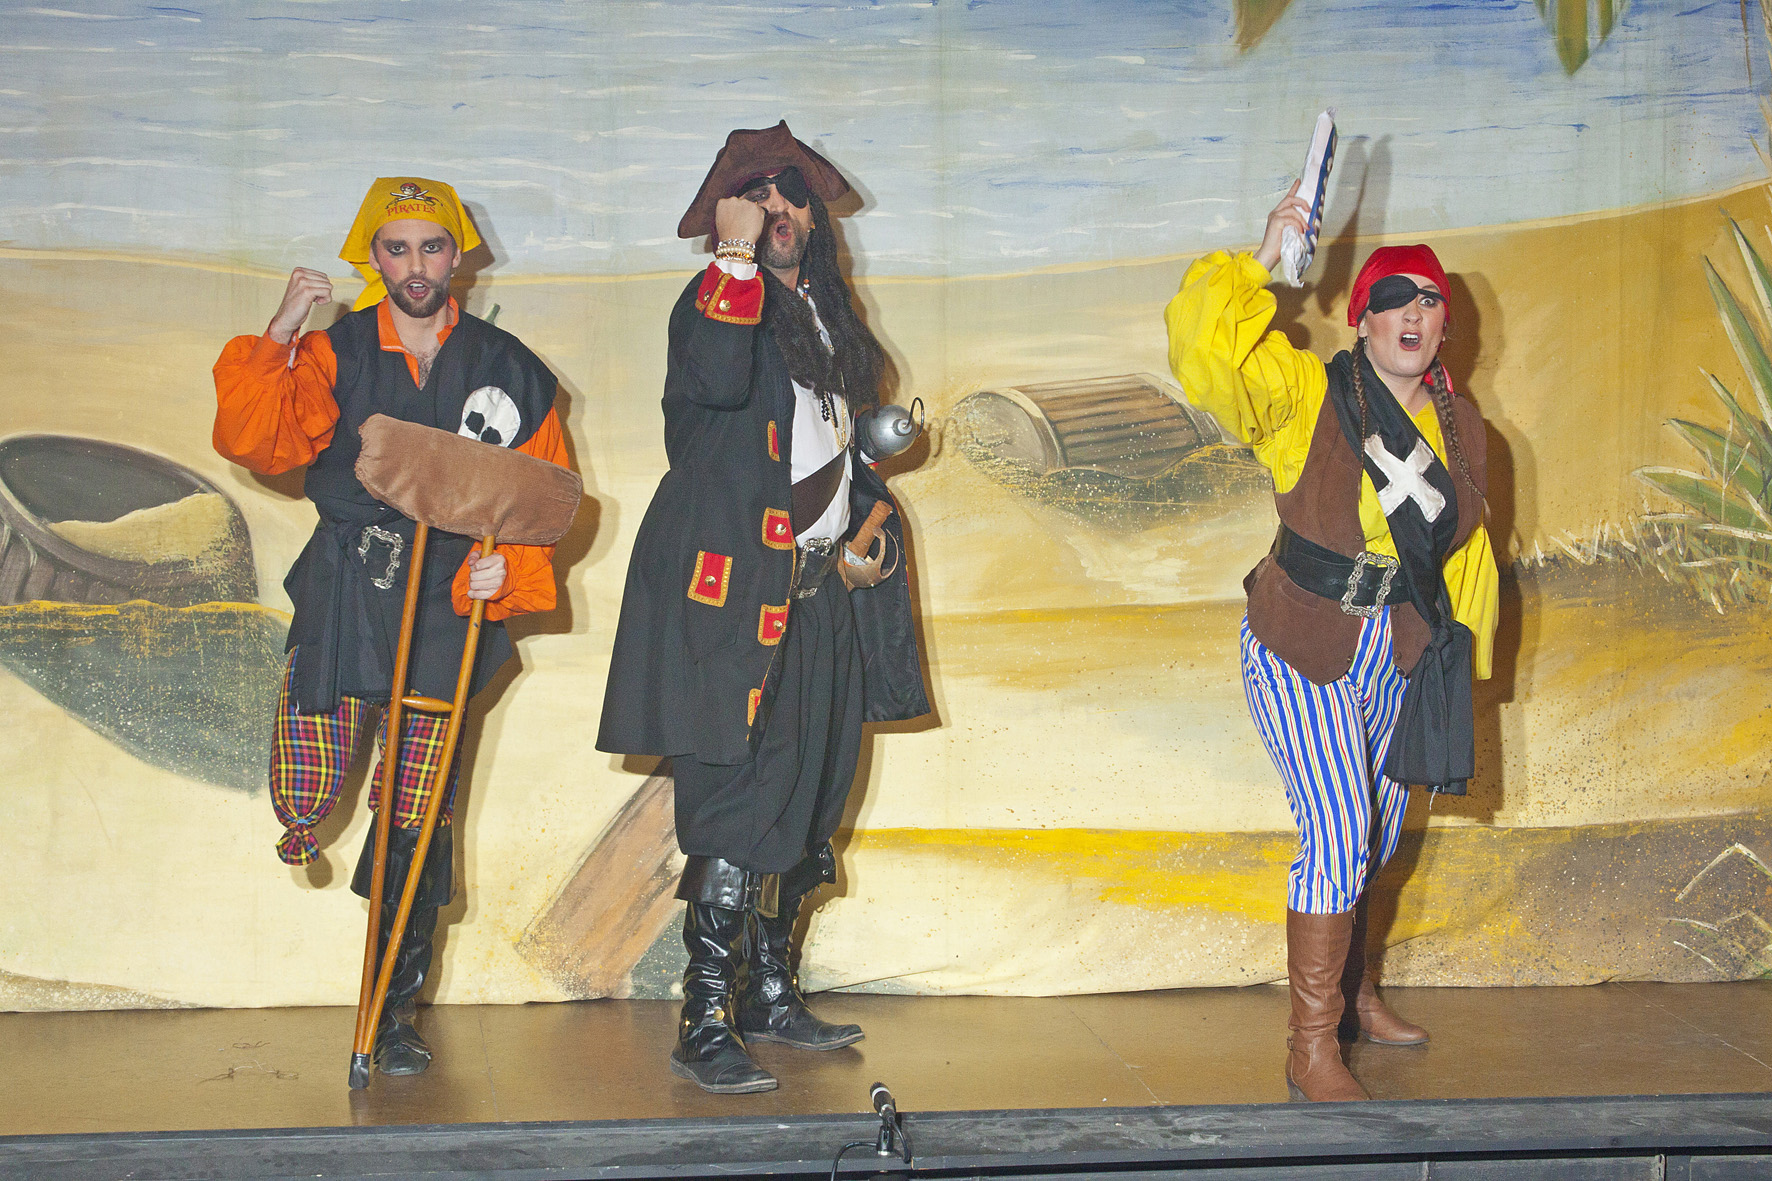 Huge success for robinson crusoe and the pirates wayfarers pantomime society - Robinson crusoe style ...